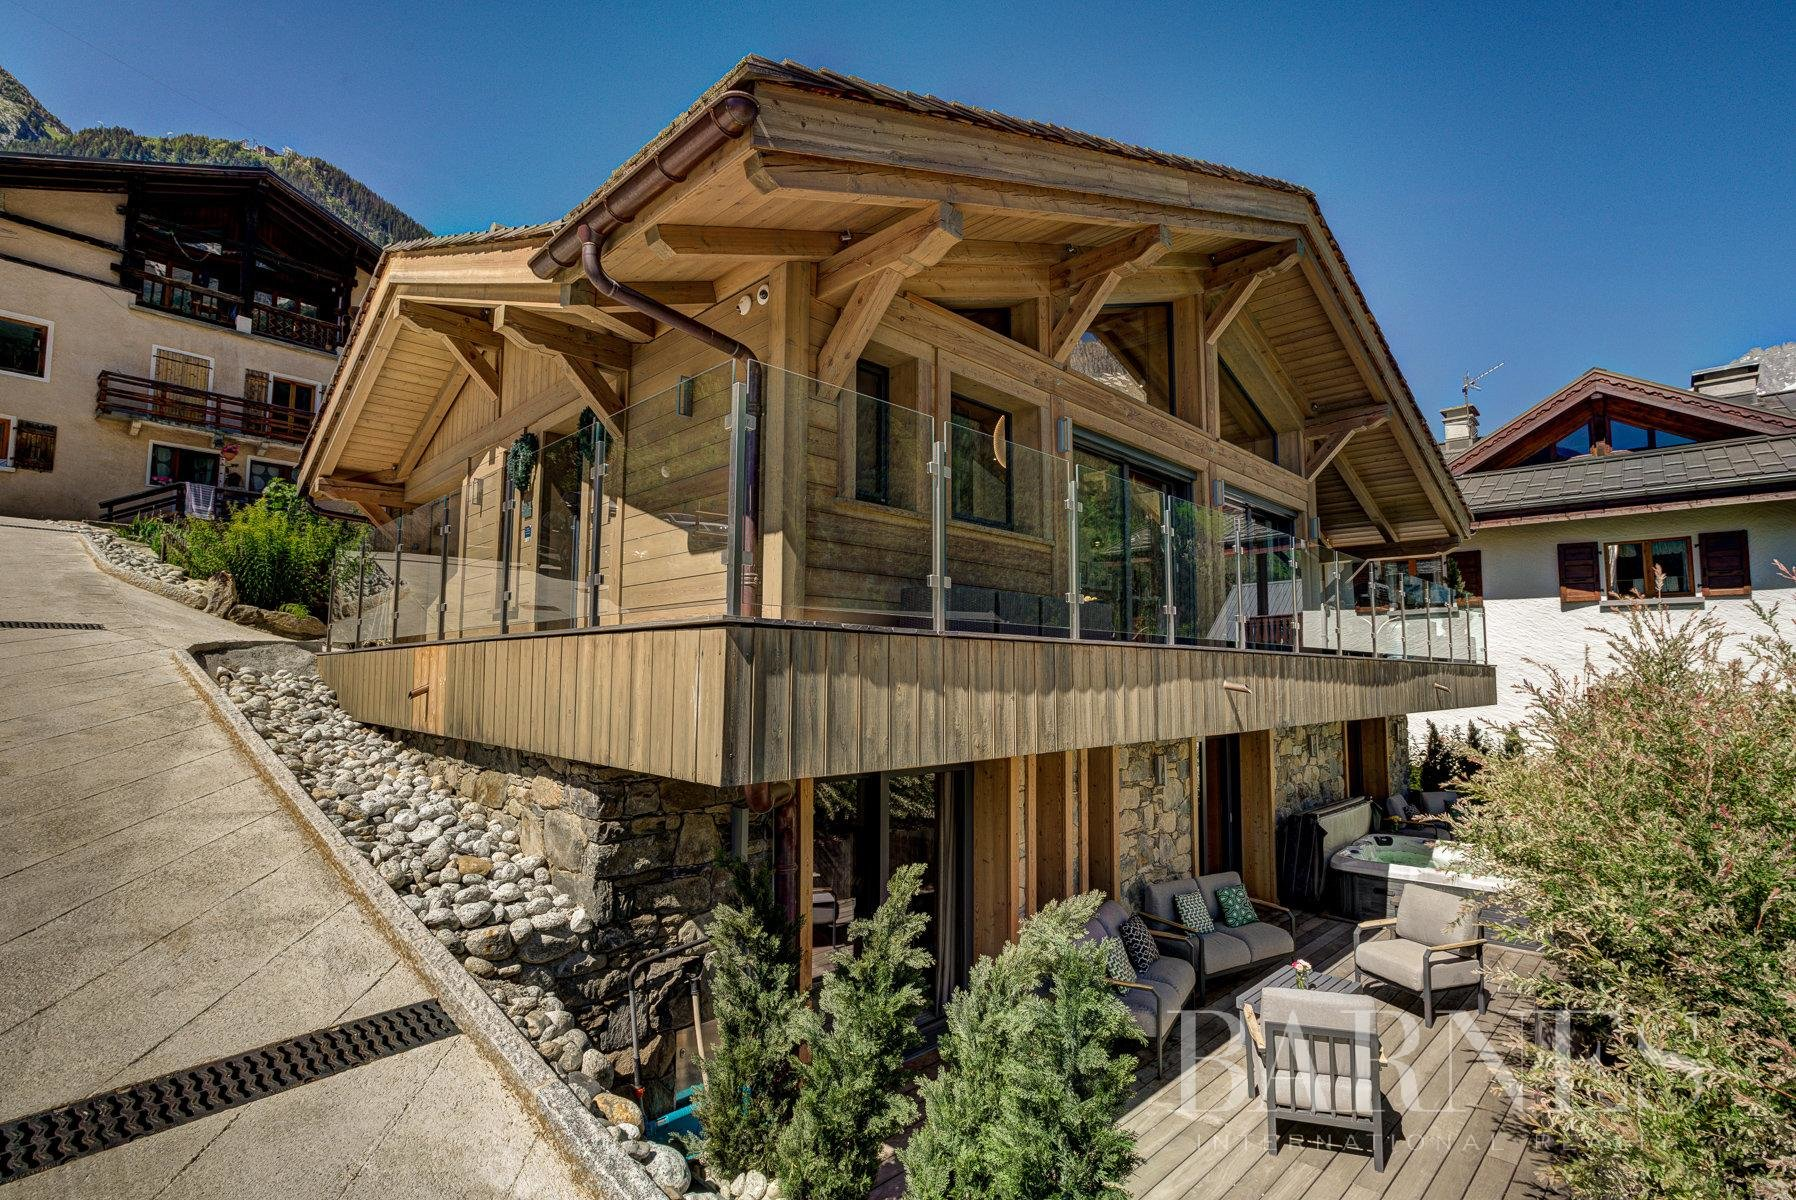 BEAUTIFUL CHALET IN MOUSSOUX Chalet in Chamonix